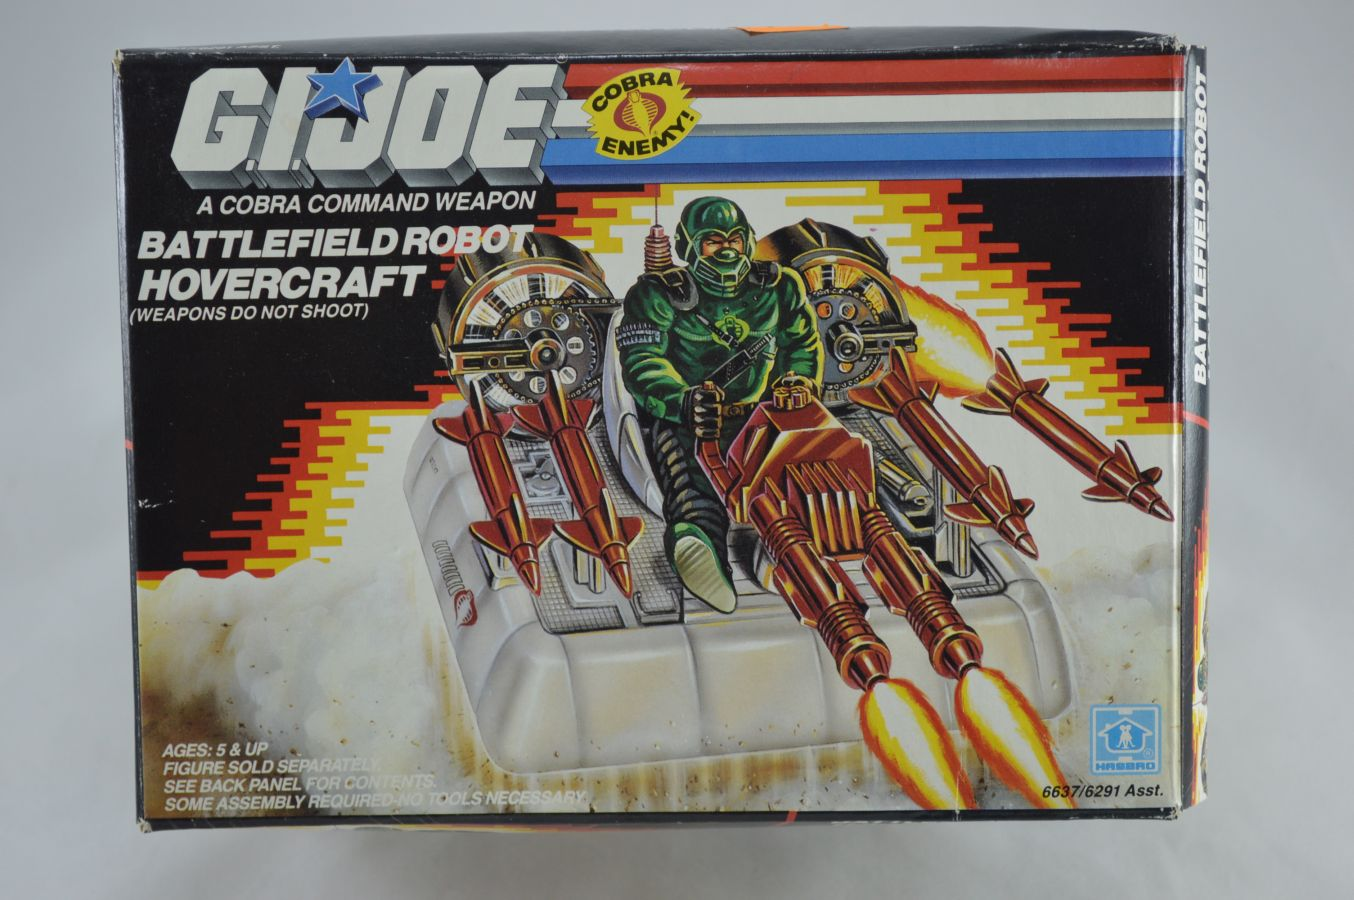 GI Joe Battlefield Robot Hovercraft Vehicle MIB Vintage